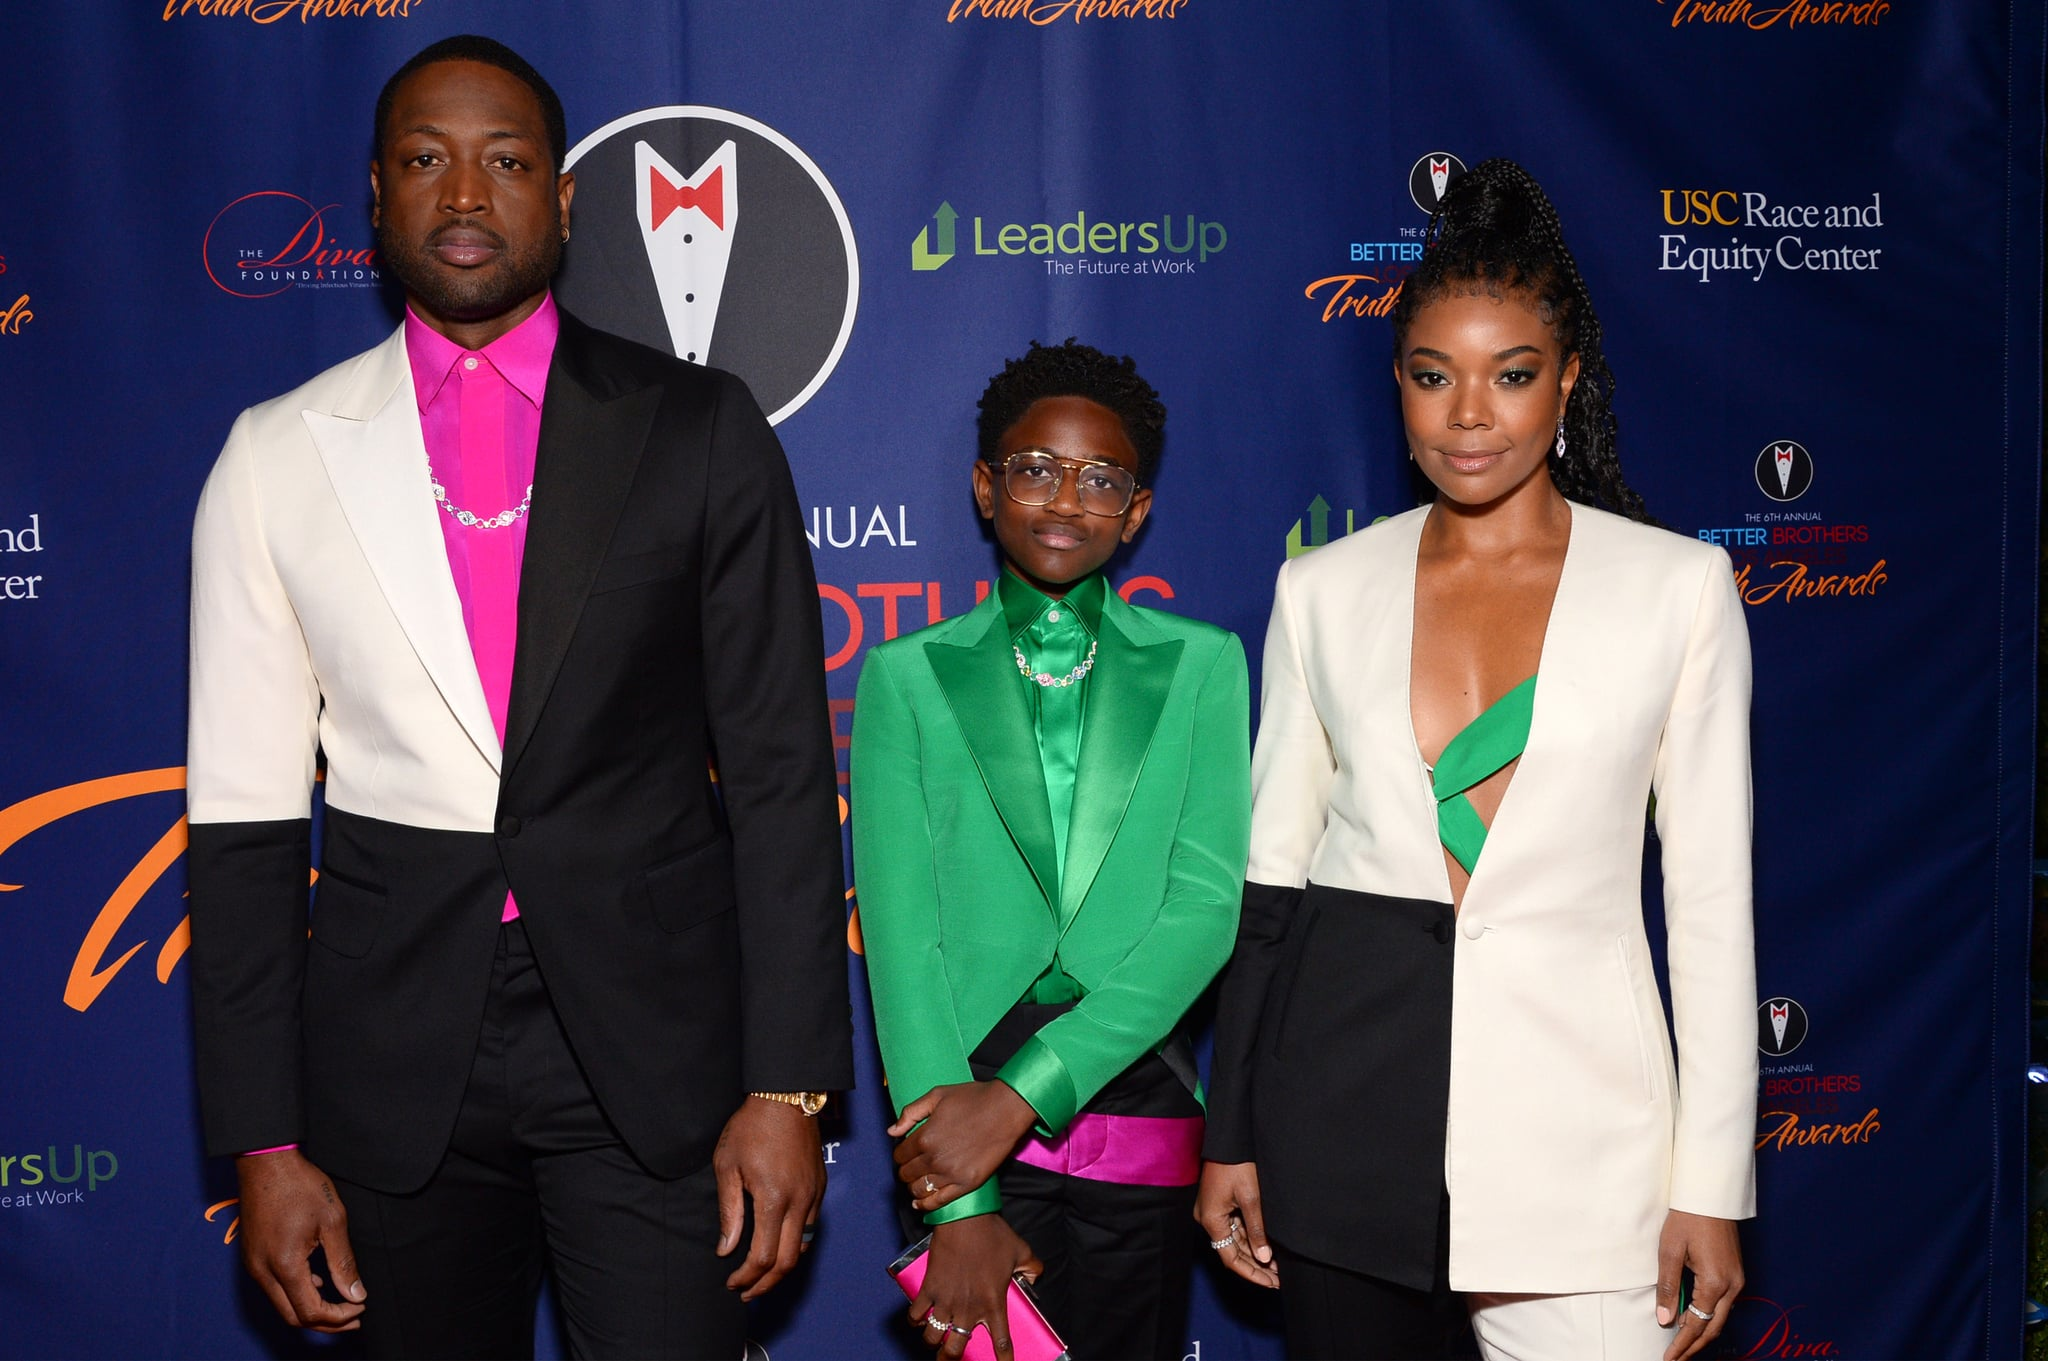 LOS ANGELES, CALIFORNIA - MARCH 07: (L-R) Dwyane Wade, Zaya Wade and Gabrielle Union attend the Better Brothers Los Angeles' 6th annual Truth Awards at Taglyan Complex on March 07, 2020 in Los Angeles, California. (Photo by Andrew Toth/Getty Images)